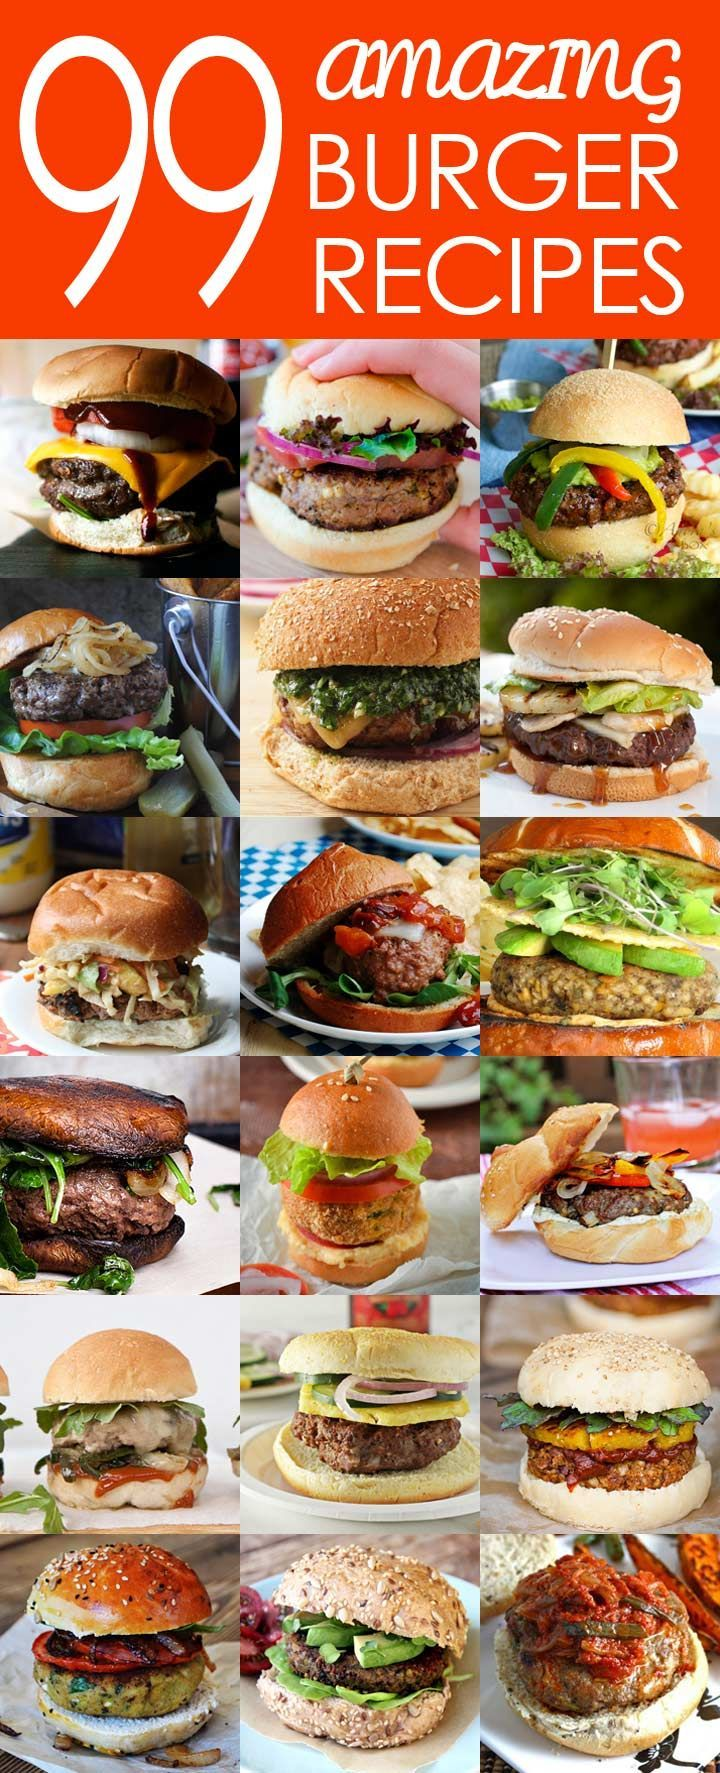 best what a burger images on pinterest burger recipes